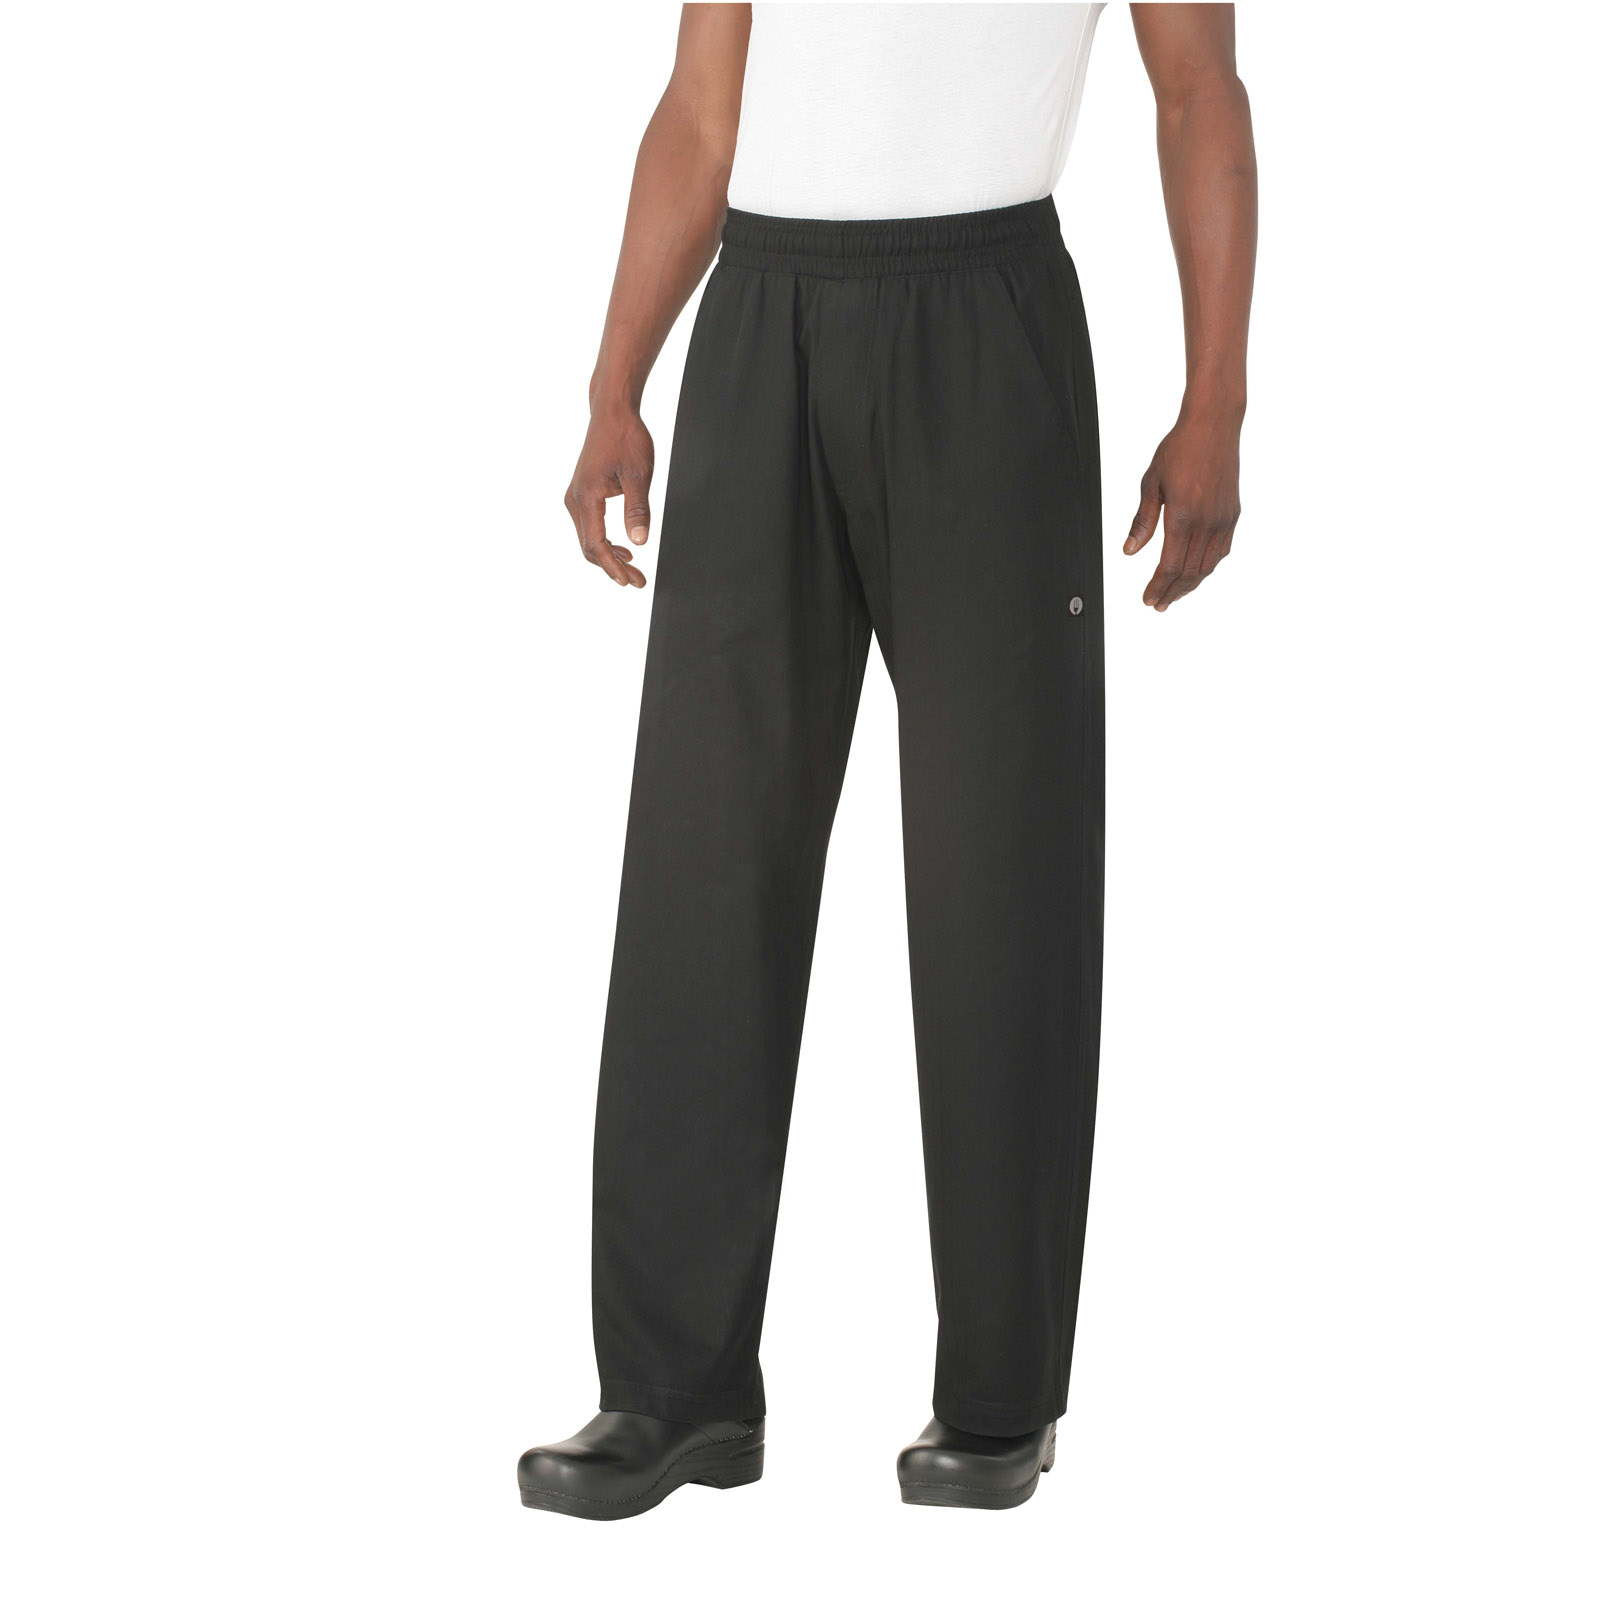 Chef Works BSOLBLK4XL chef's pants